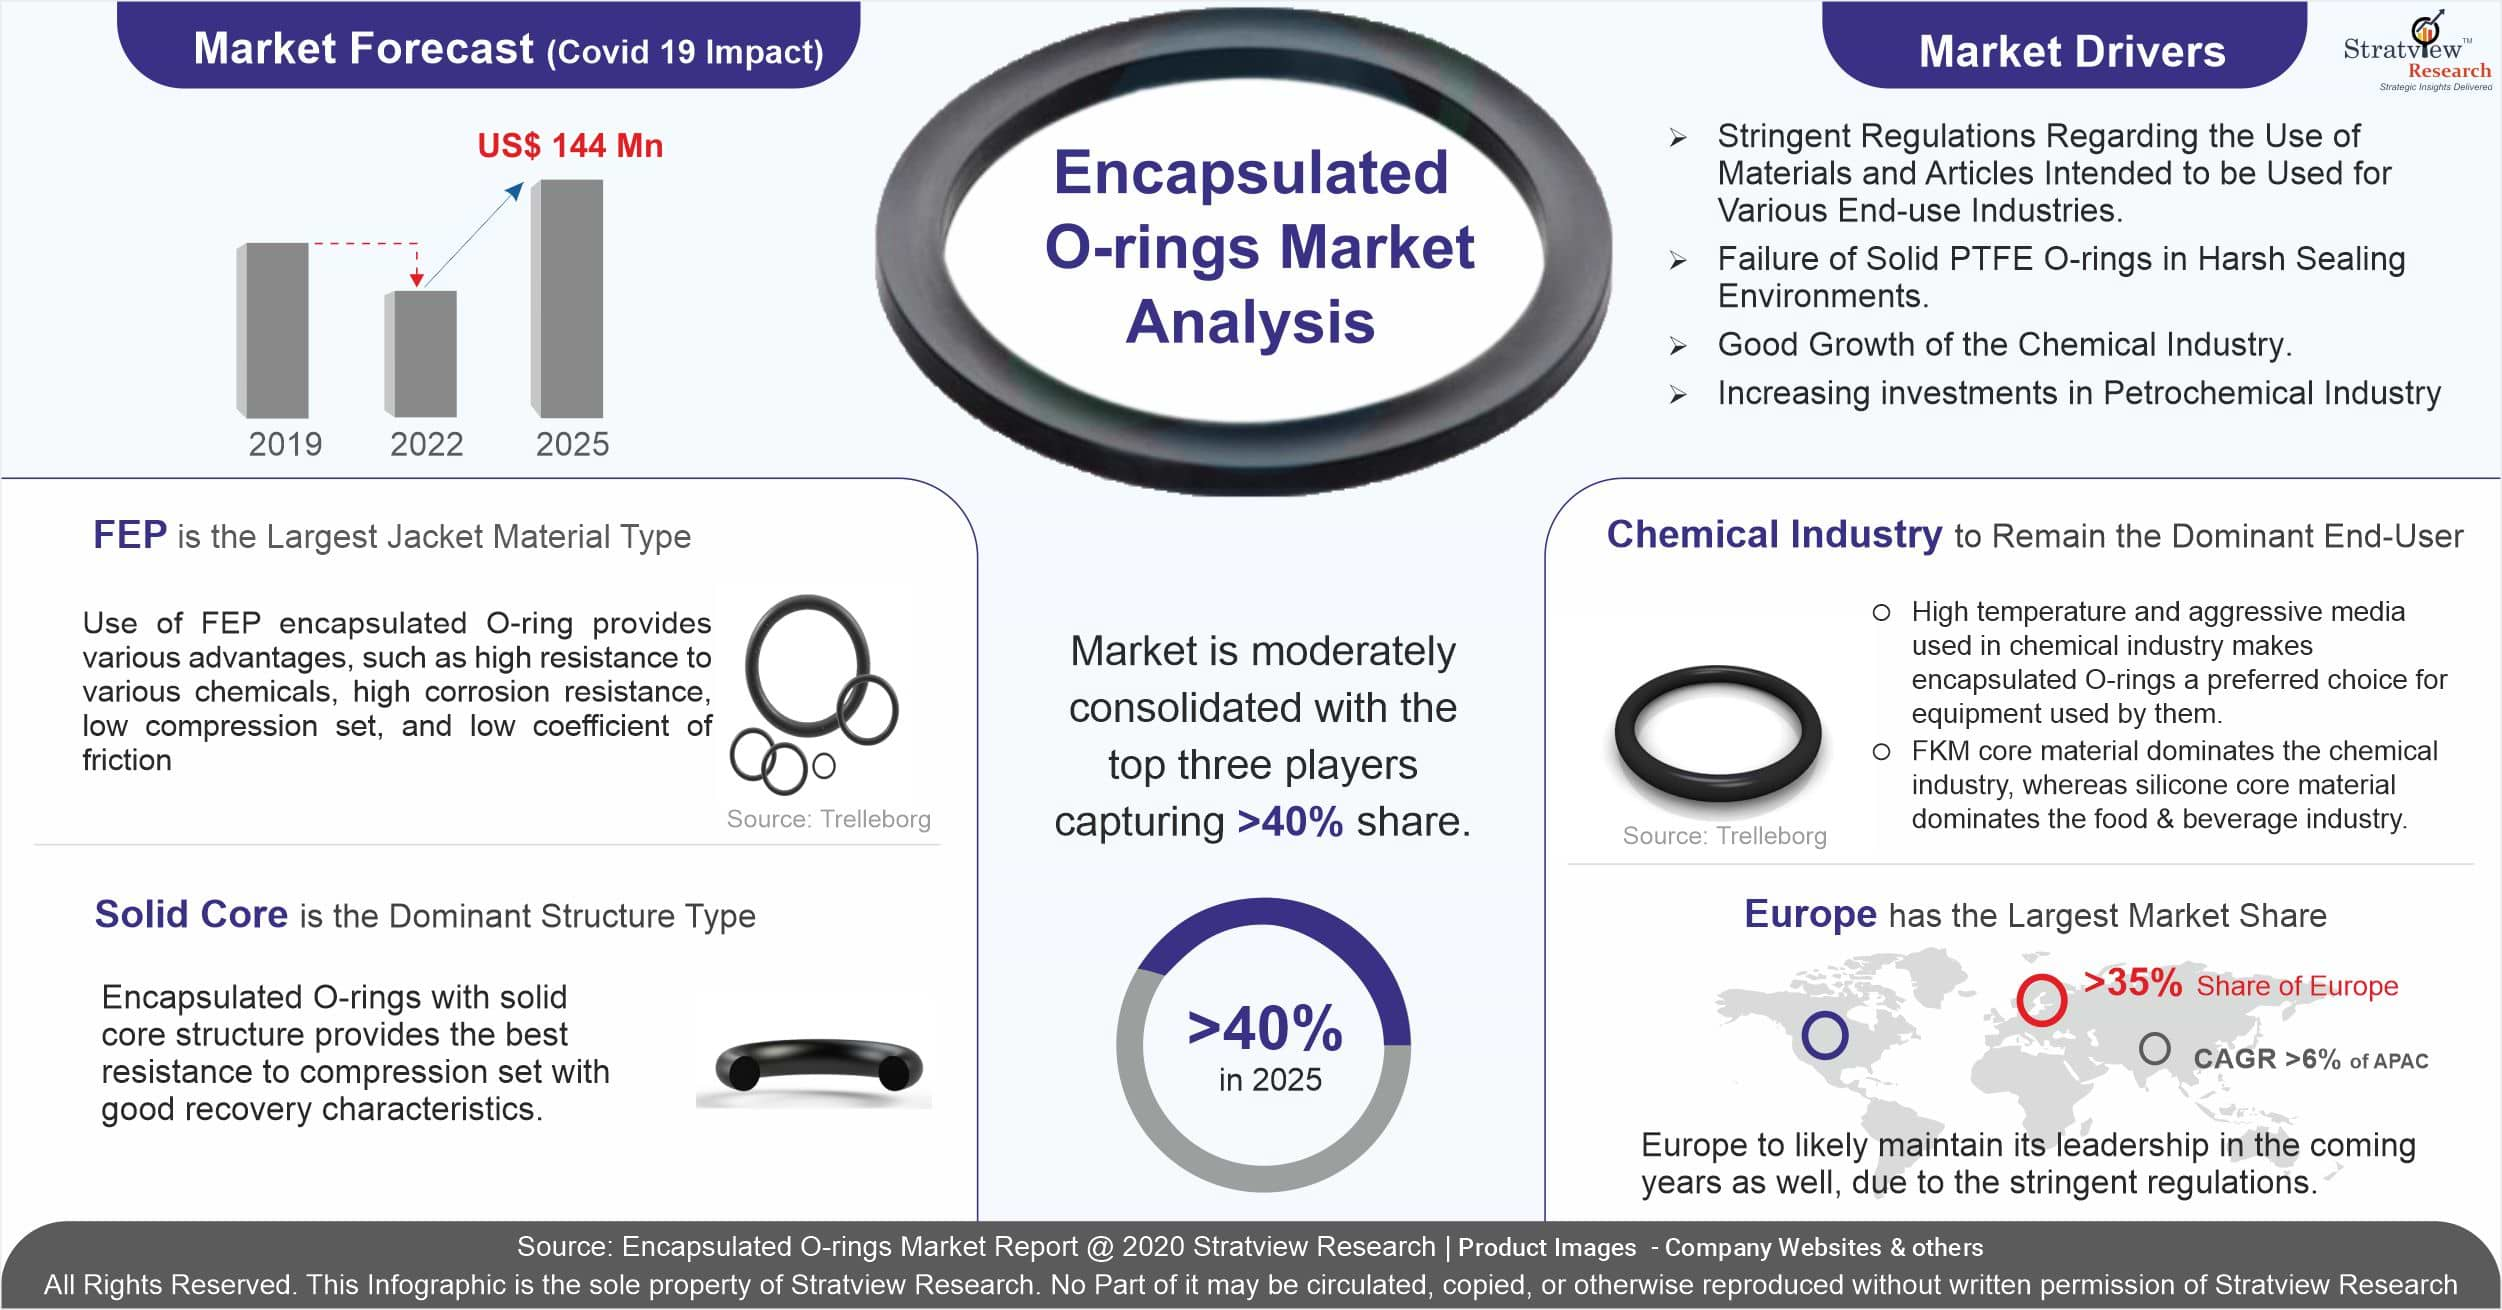 Encapsulated O-rings Market Analysis